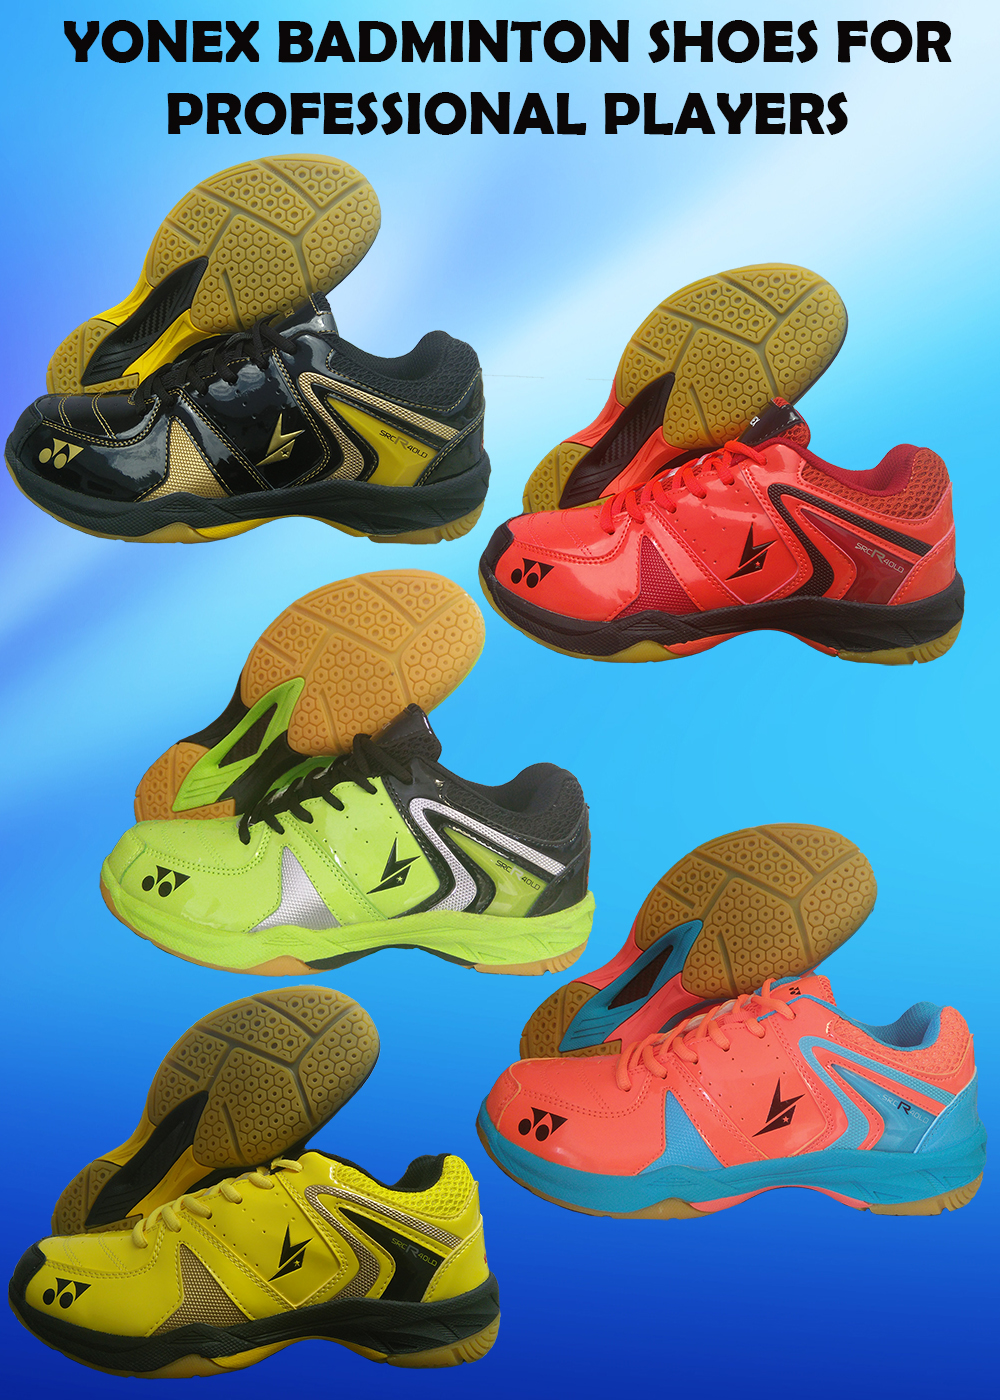 ALL NEW YONEX BADMINTON SHOES FOR PROFESSIONAL PLAYERS